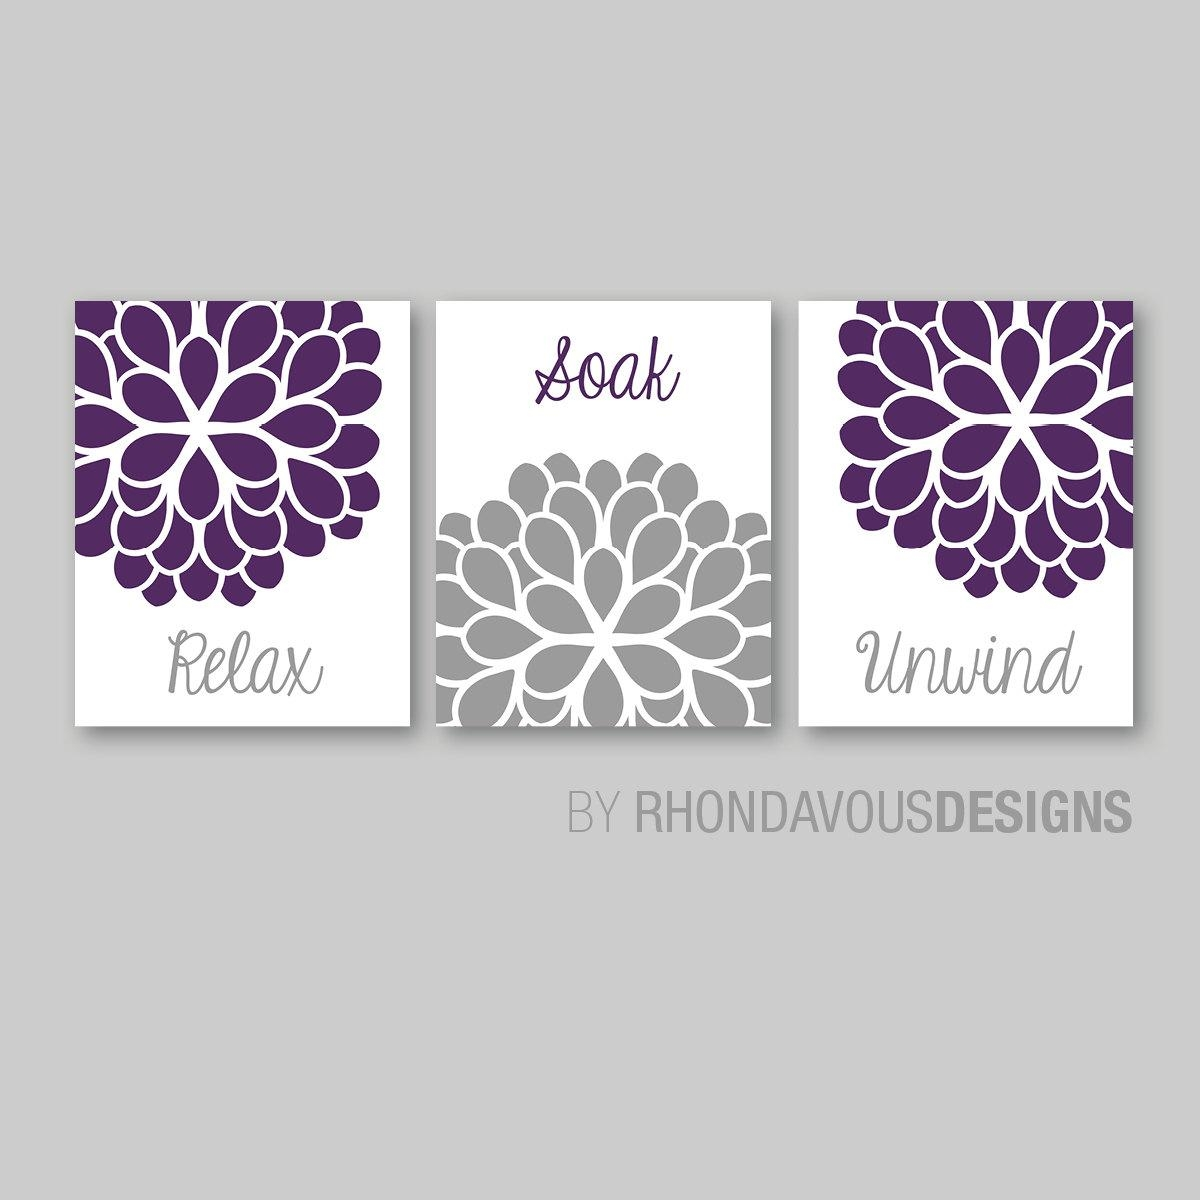 Bathroom Decor Bathroom Art Relax Soak Unwind Flower Pertaining To Purple Bathroom Wall Art (View 13 of 20)